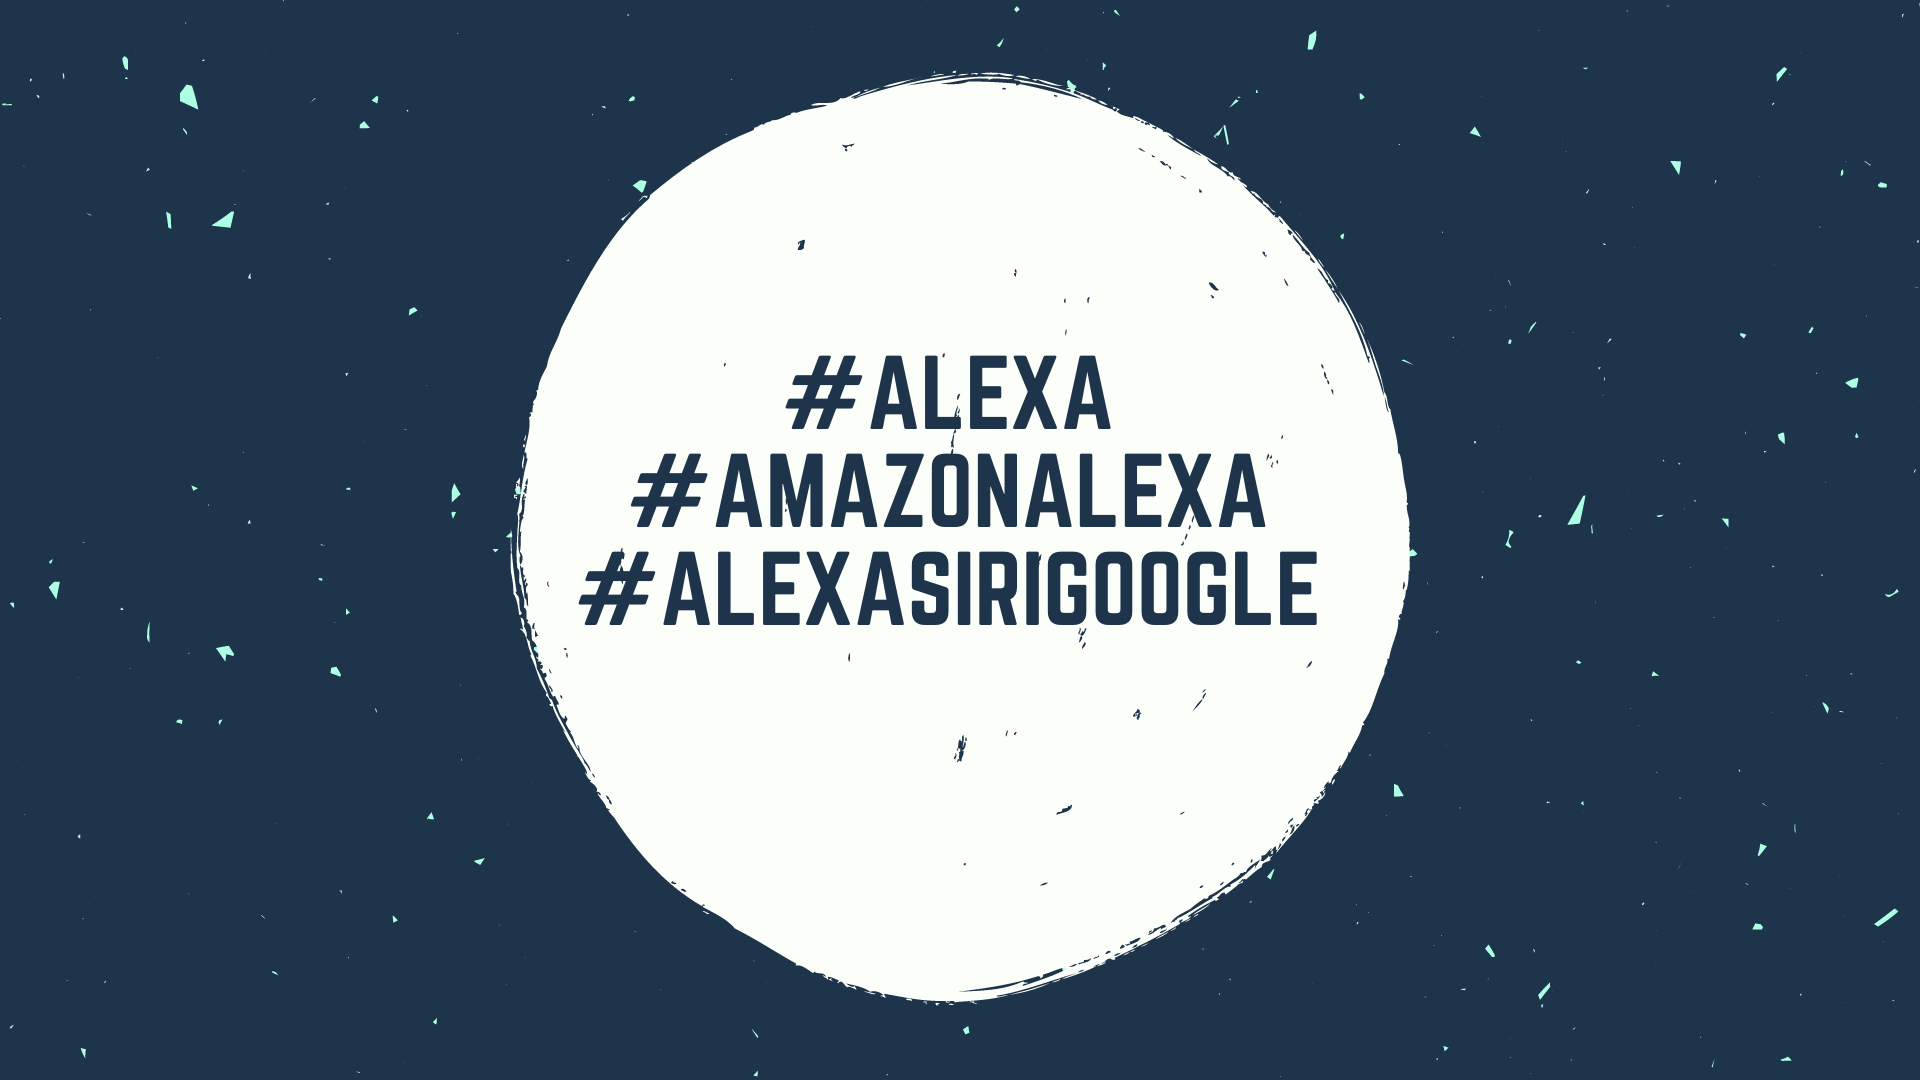 Appropriate Hashtags About Posts Related To Alexa Or Siri  - Appropriate Hashtags about Posts Related to Alexa or Siri - Alexa, Siri & Ok Google Captions for Voice-Assistant Lovers in 2021